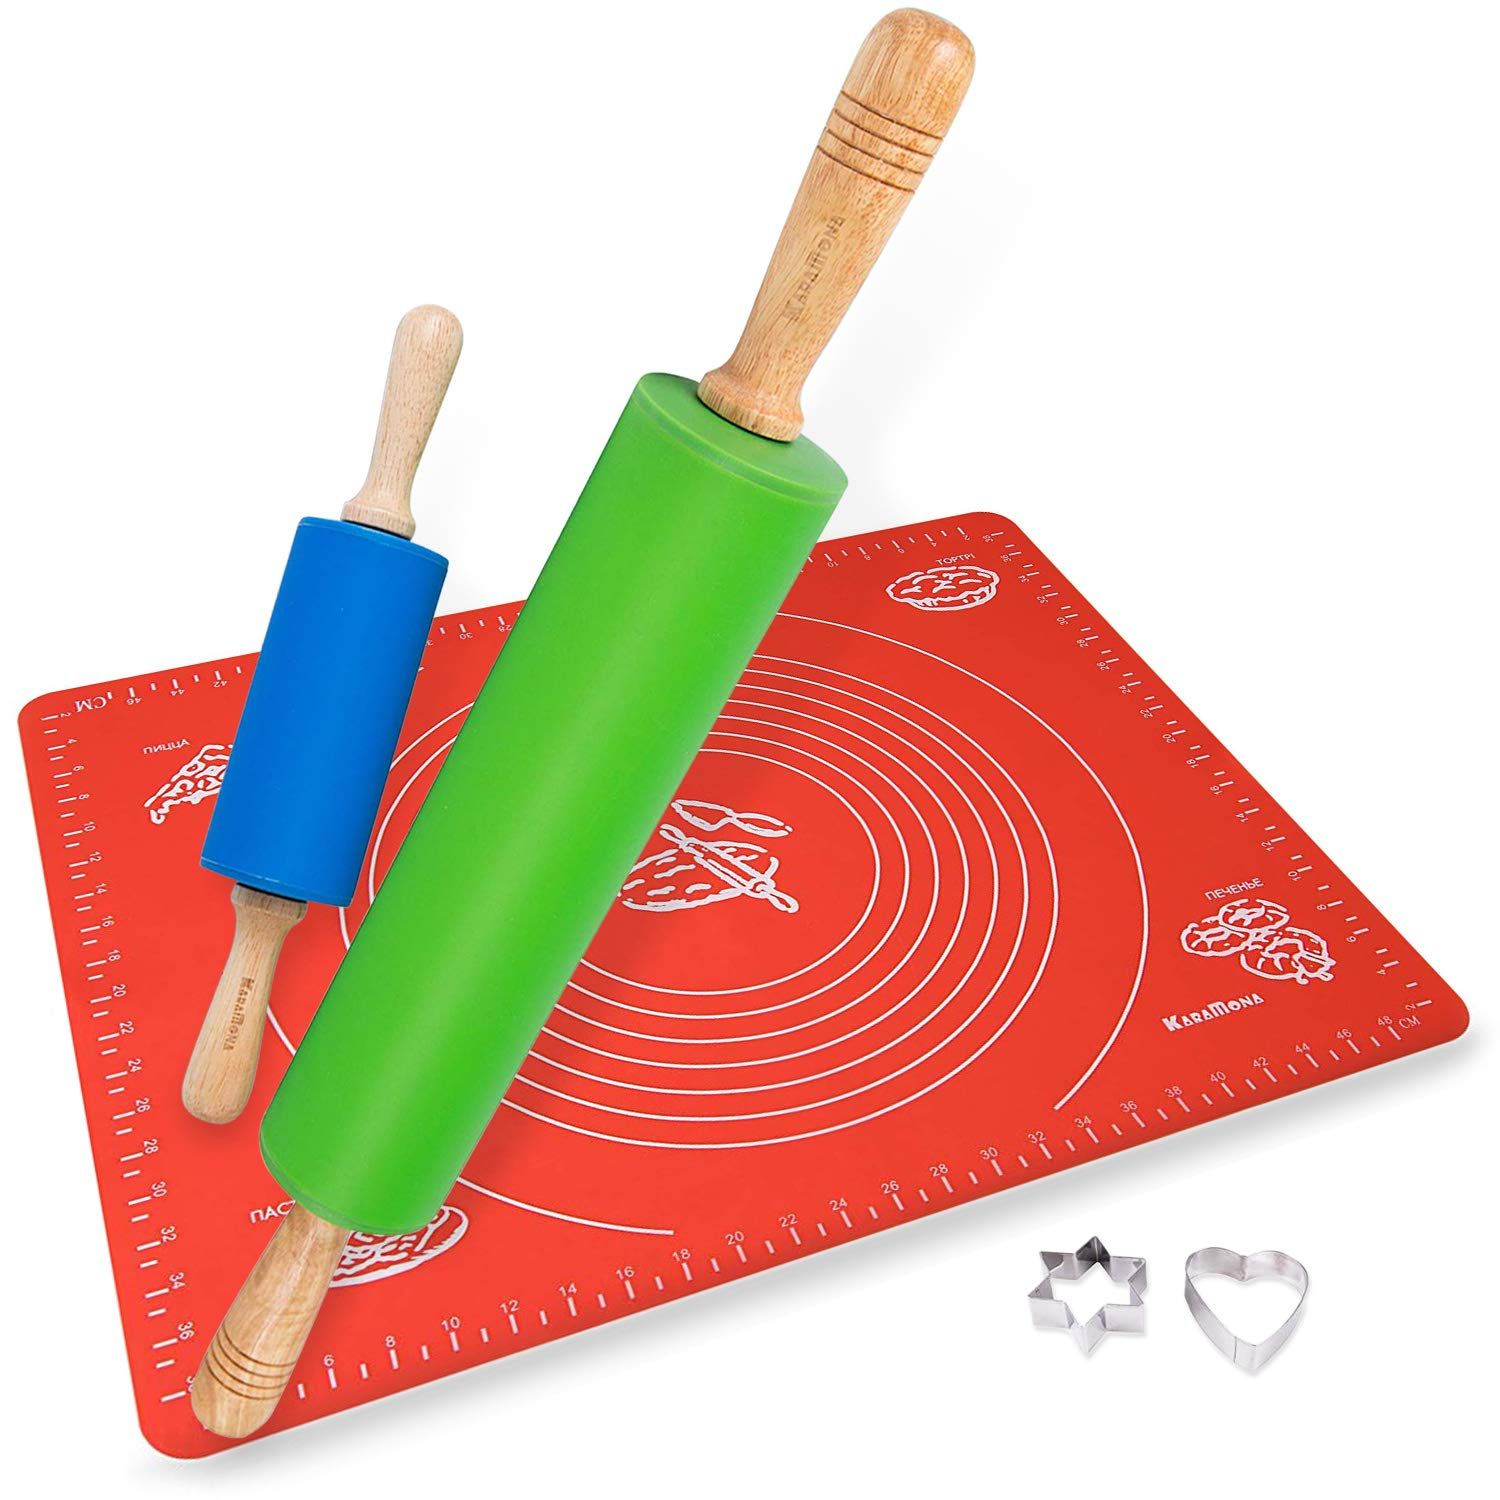 KaraMona Silicone Rolling Pin And Mat & Bonus Cookie Cutters Set: Large Silicone Rolling Pin, Mini Silicone Rolling Pin, 1 Large Silicone Mat For Rolling Dough, 2 Stainless Steel Cookie Cutters